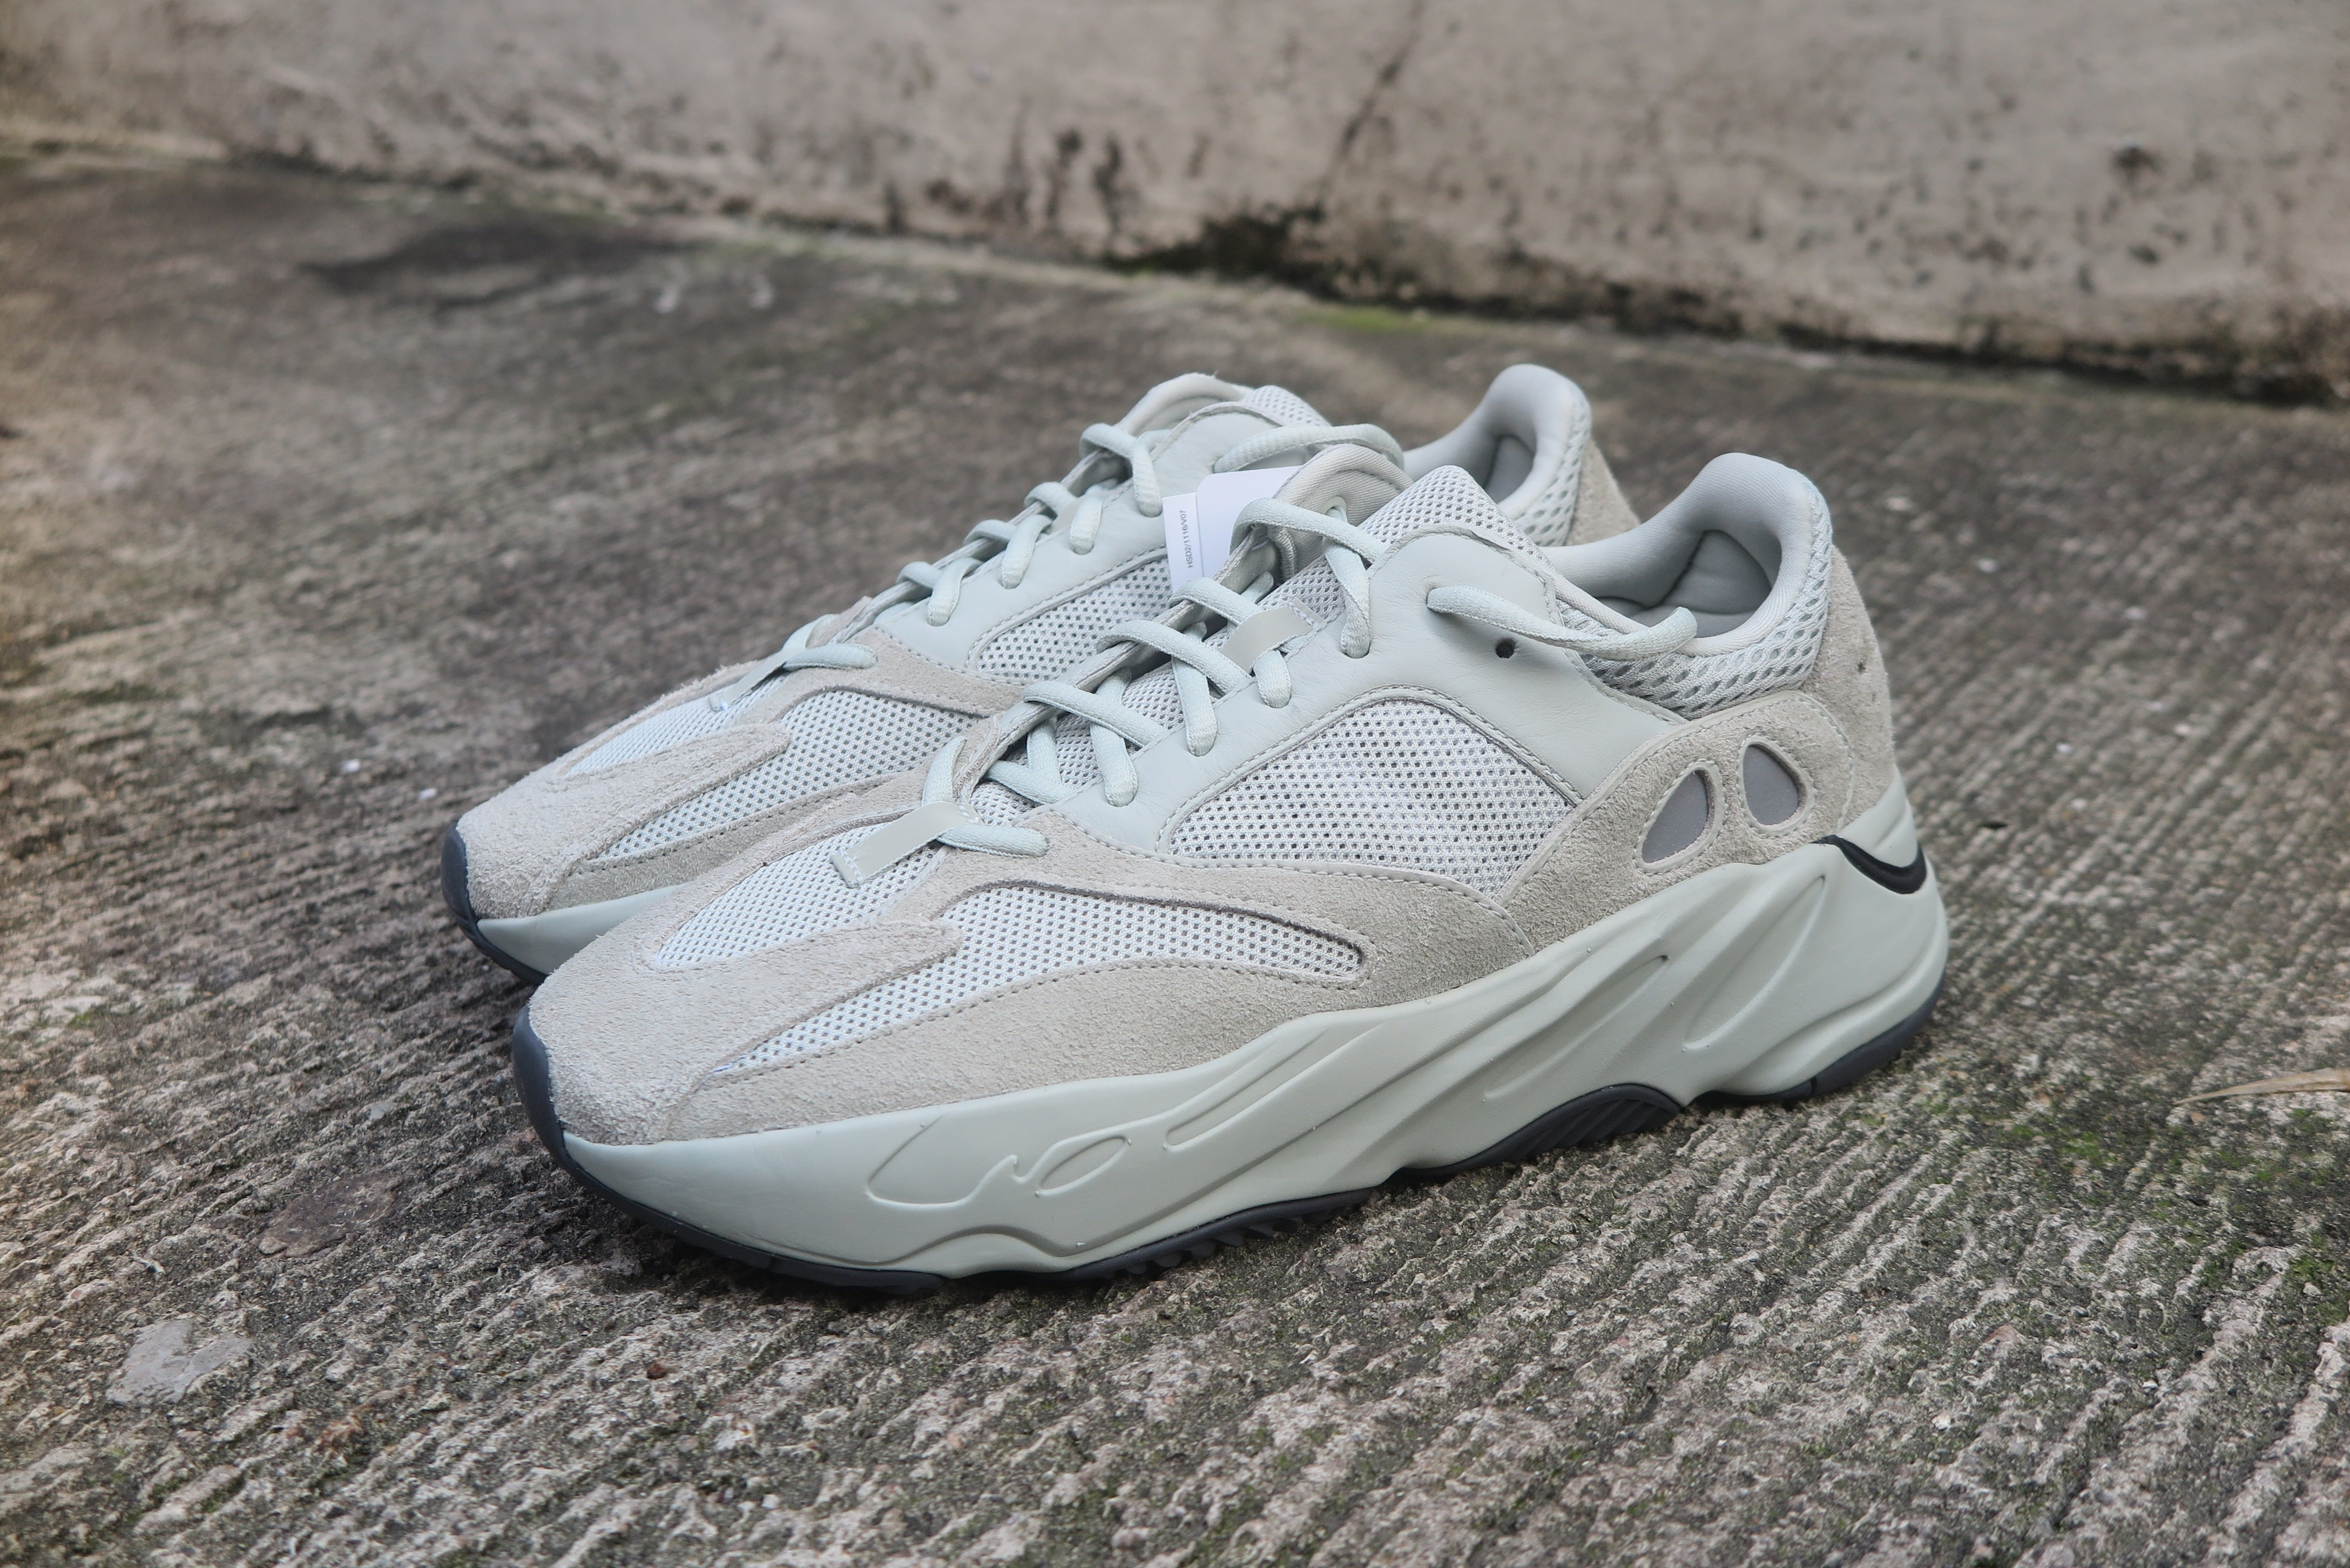 adidas Yeezy Boost 700 - Salt #EG7487-Sneakers-Navy Selected Shop